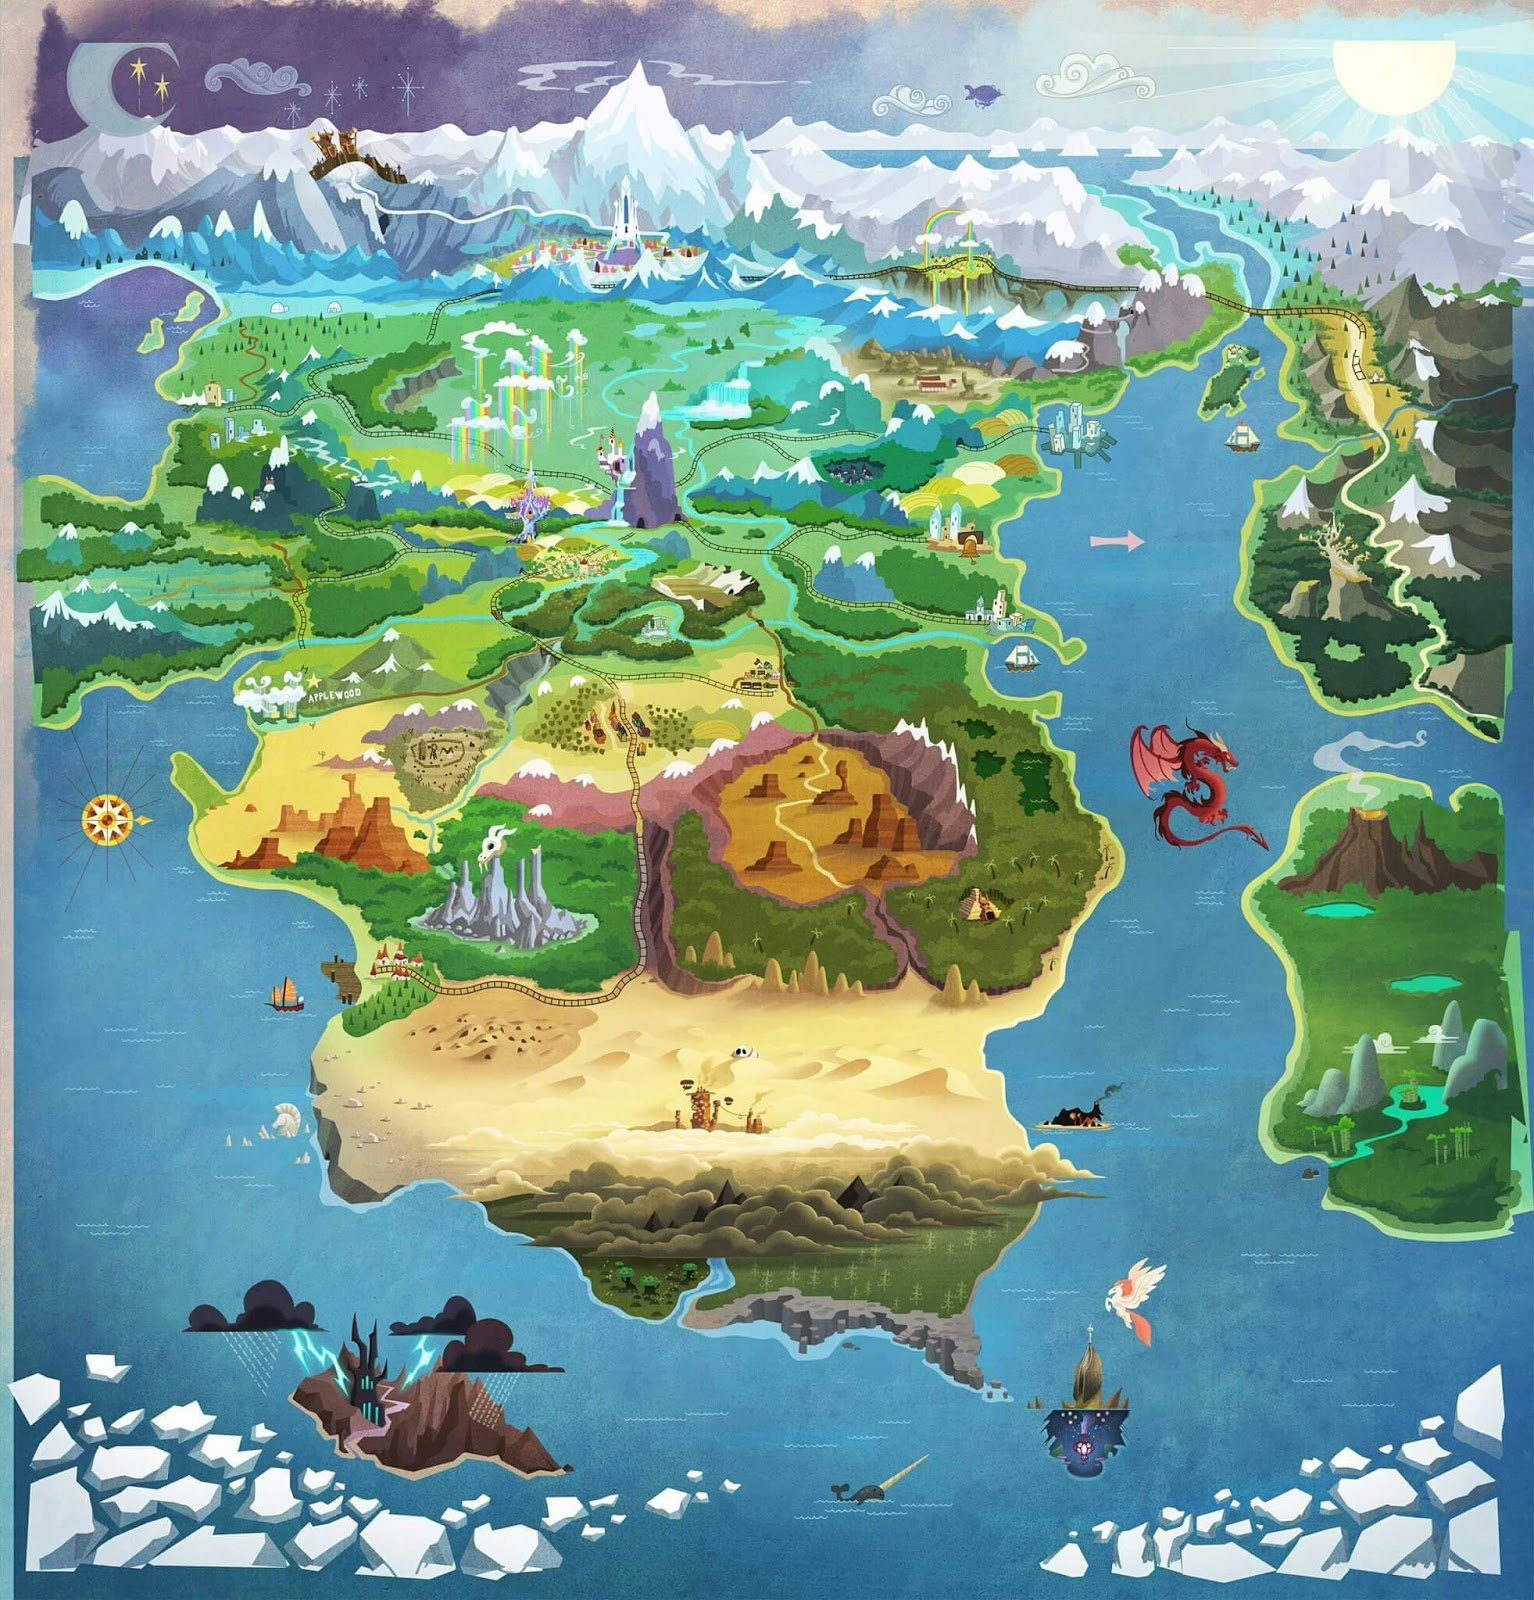 Mlp Equestria Map Map of Equestria expanded AGAIN   FiM Show Discussion   MLP Forums